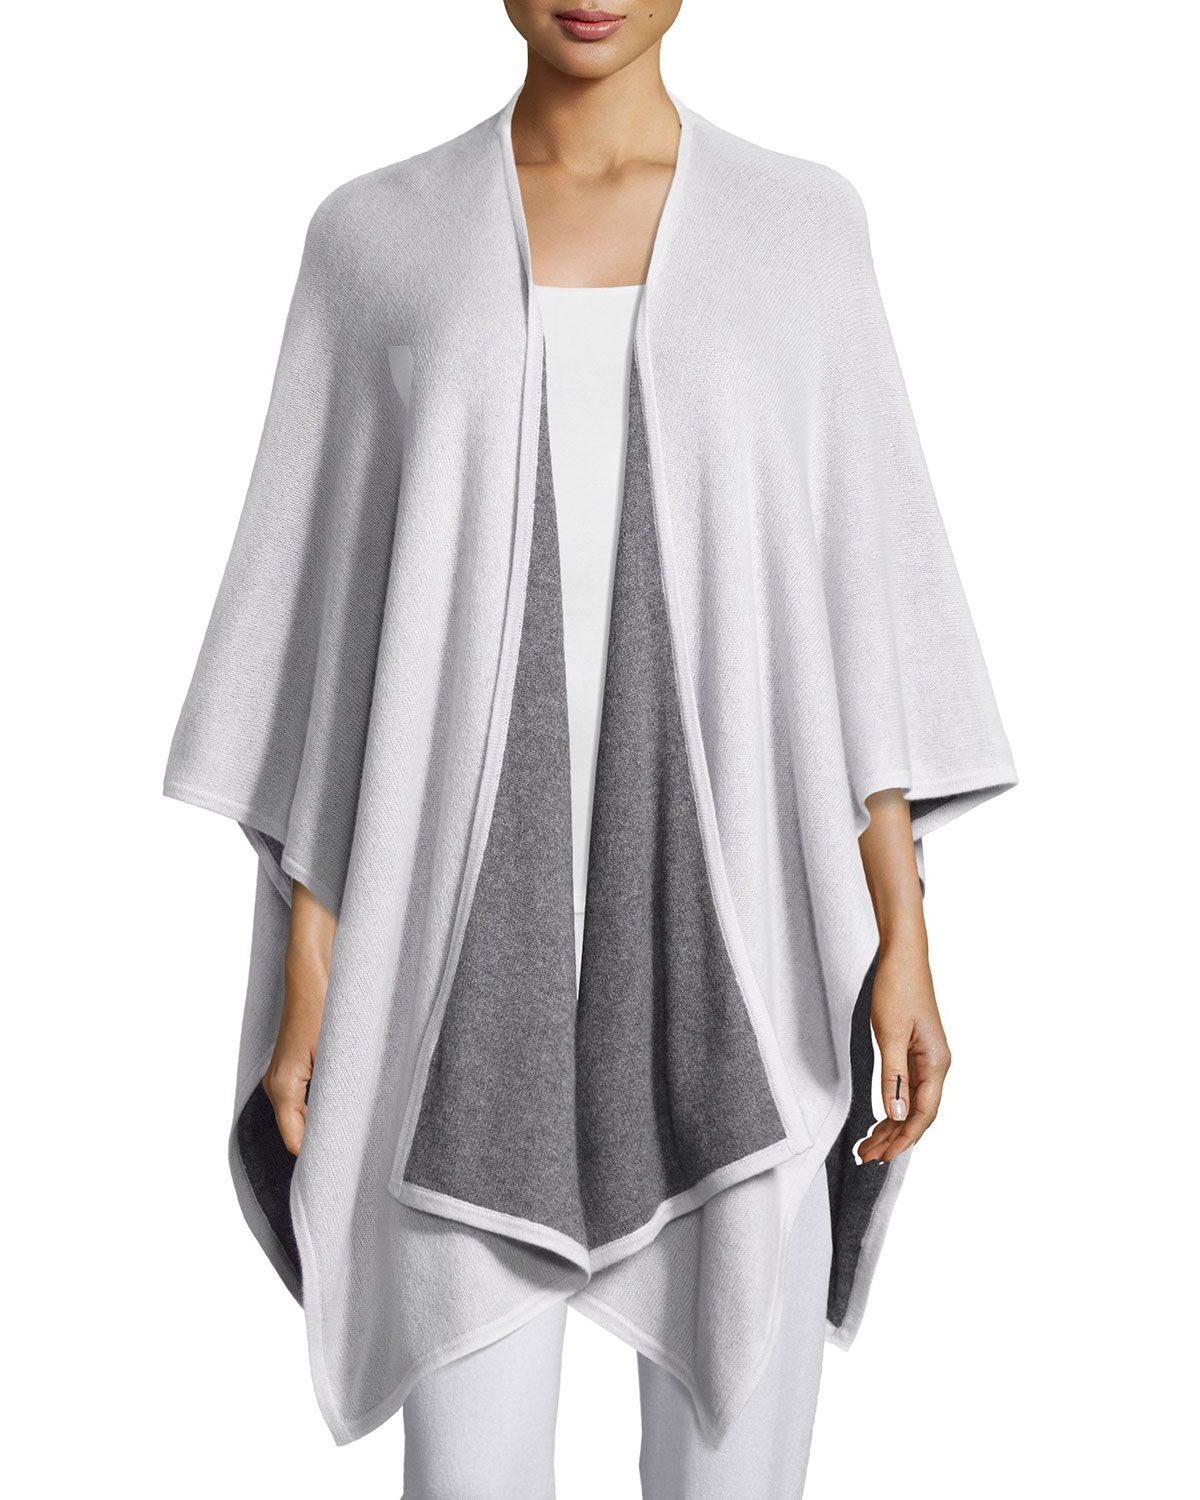 Two-Tone Cashmere Shawl, Women's, Mink/Grey - Neiman Marcus Cashmere Collection